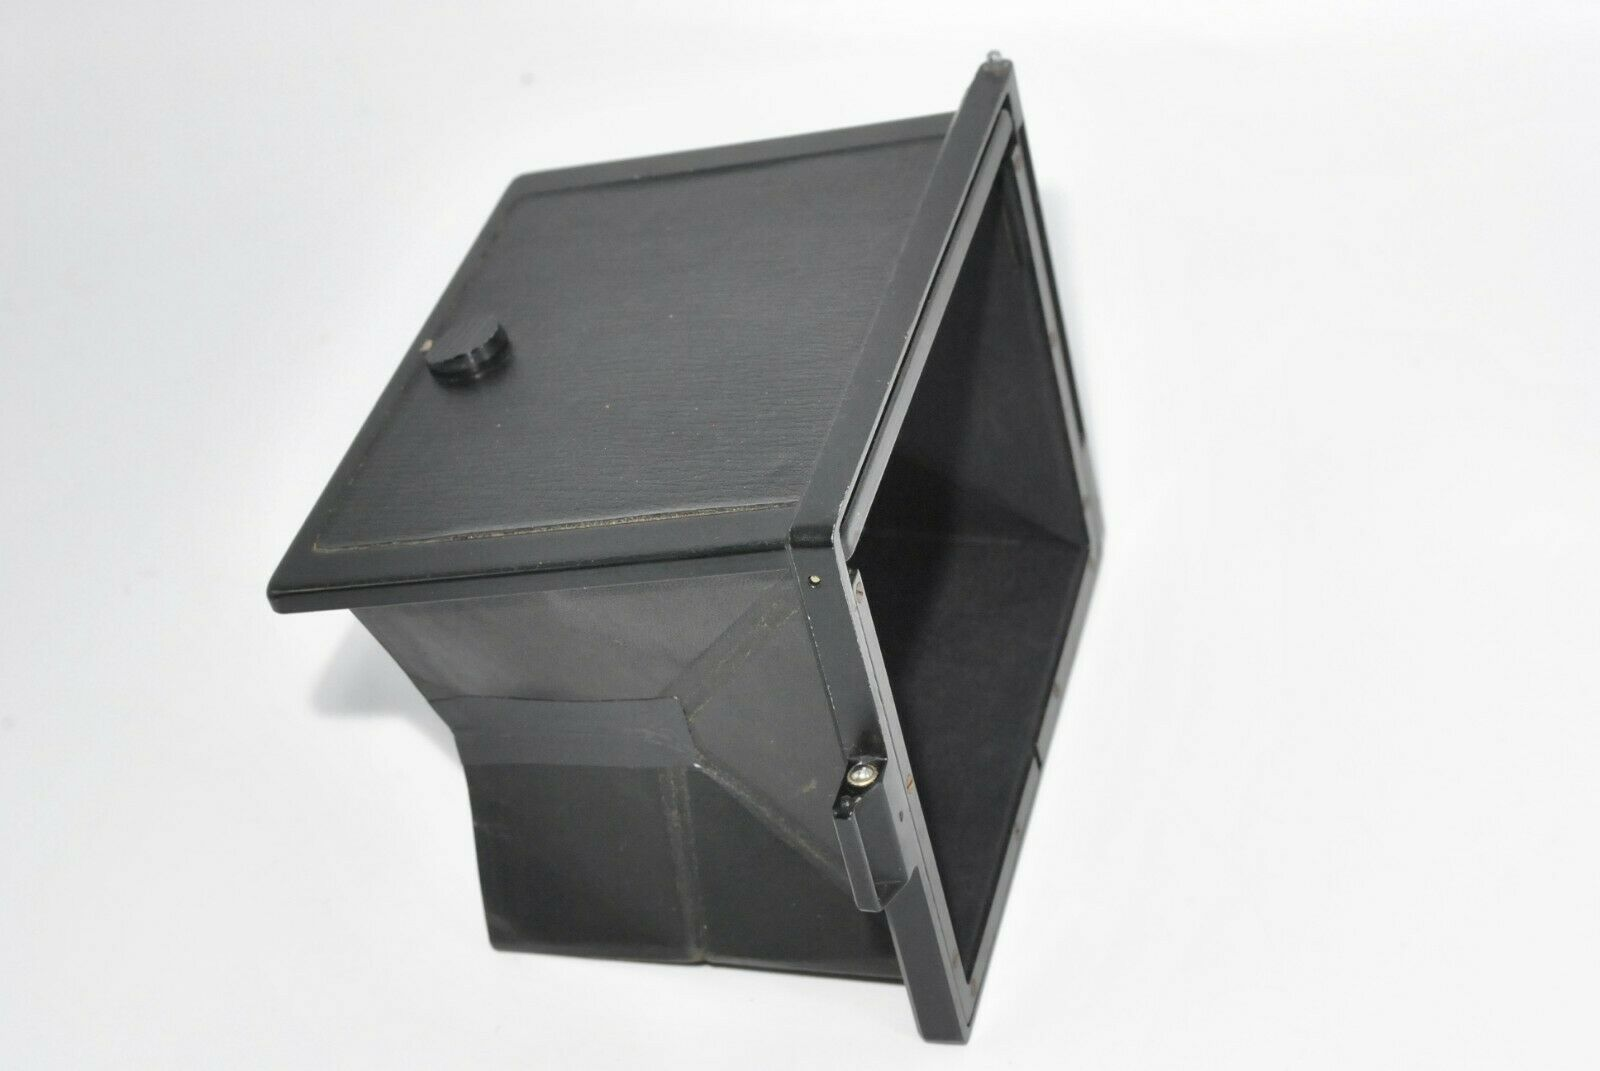 Toyo-View 4x5 Folding Focusing Hood / Ground Glass Cover from Japan 21102